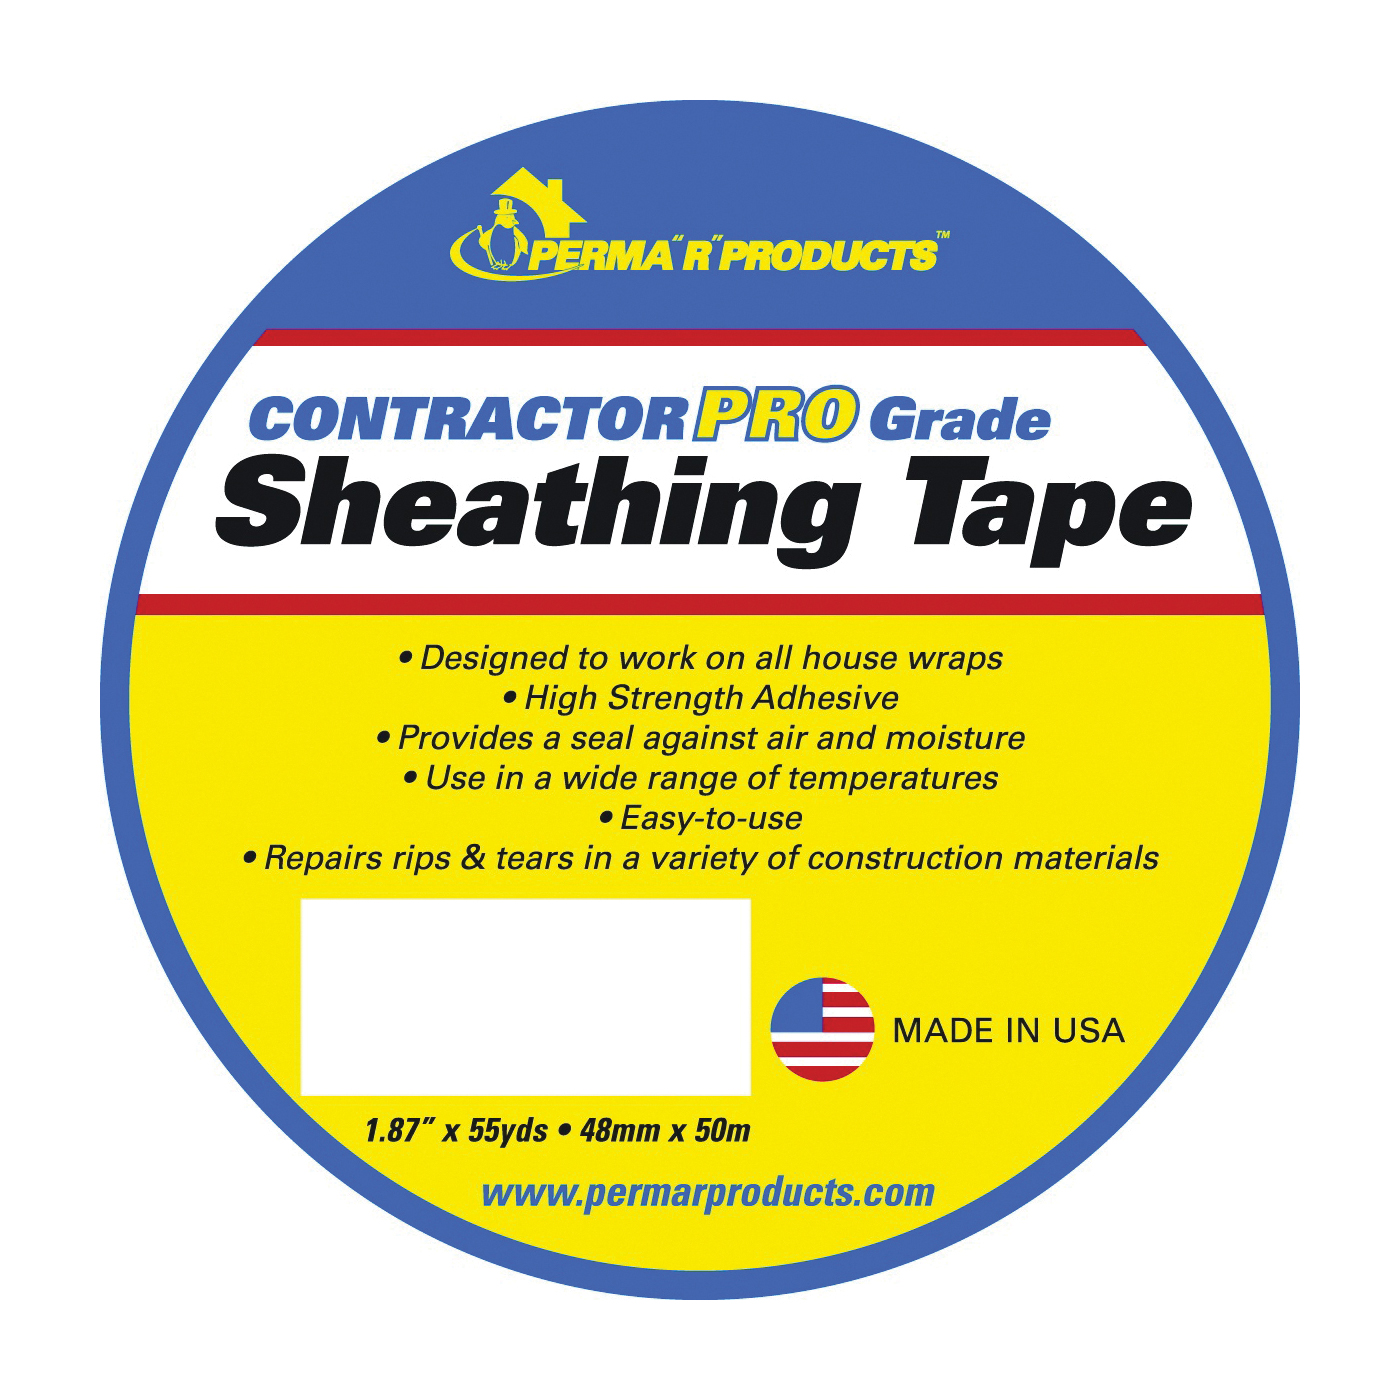 Picture of PERMA R PRODUCTS Contractor Pro Grade 18755 Sheathing Tape, 50 m L, 48 mm W, Polypropylene Backing, White